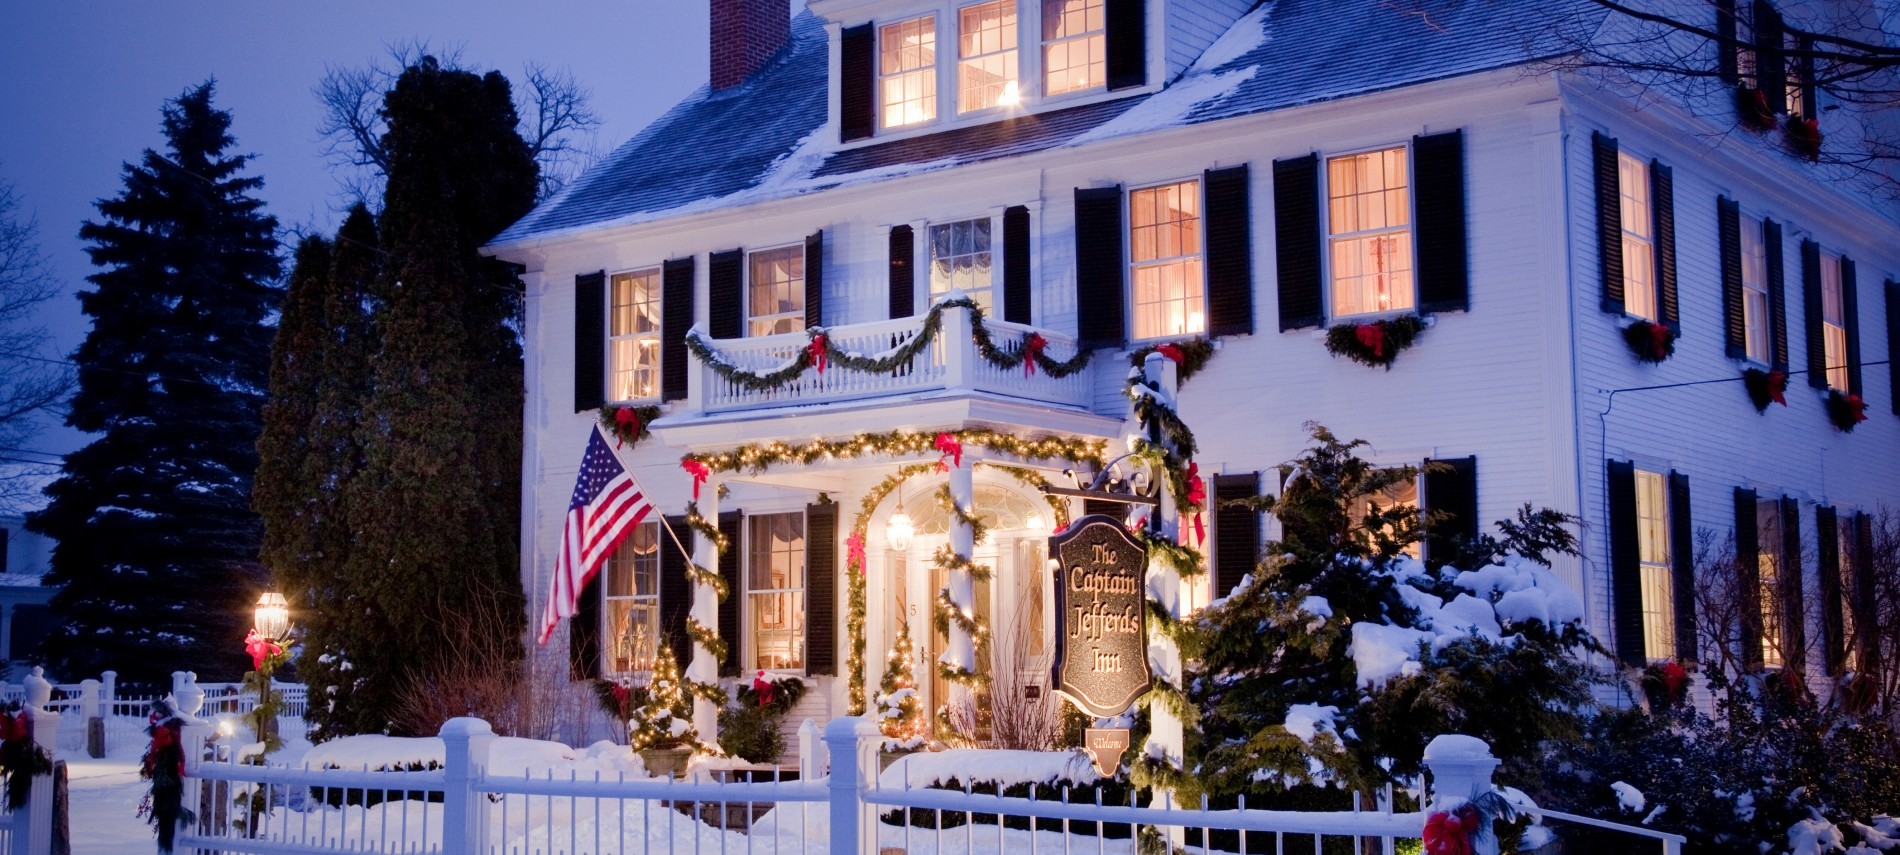 All lit up for the holidays at Captain Jefferds Inn